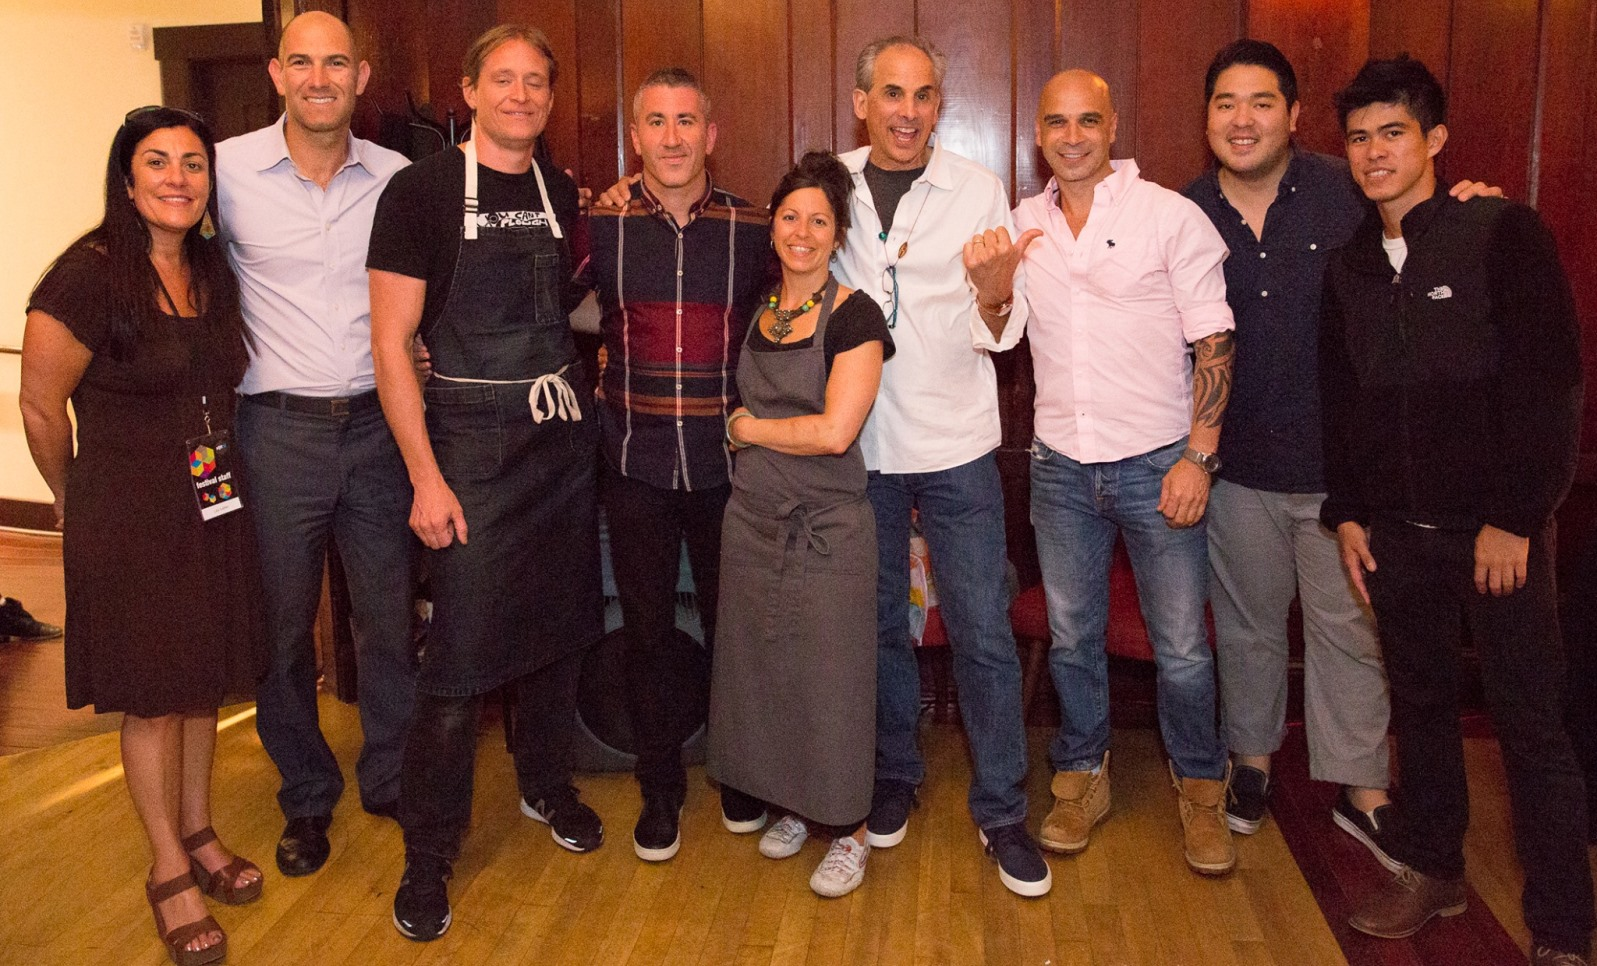 Chef Michael Solomonov (center, plaid shirt) and filmmaker Roger Sherman (center, white shirt) with chefs Ryan Pollnow, Nick Balla, Cortney Burns and Mourad Lahlou. Photo by Anita Bowen Photography